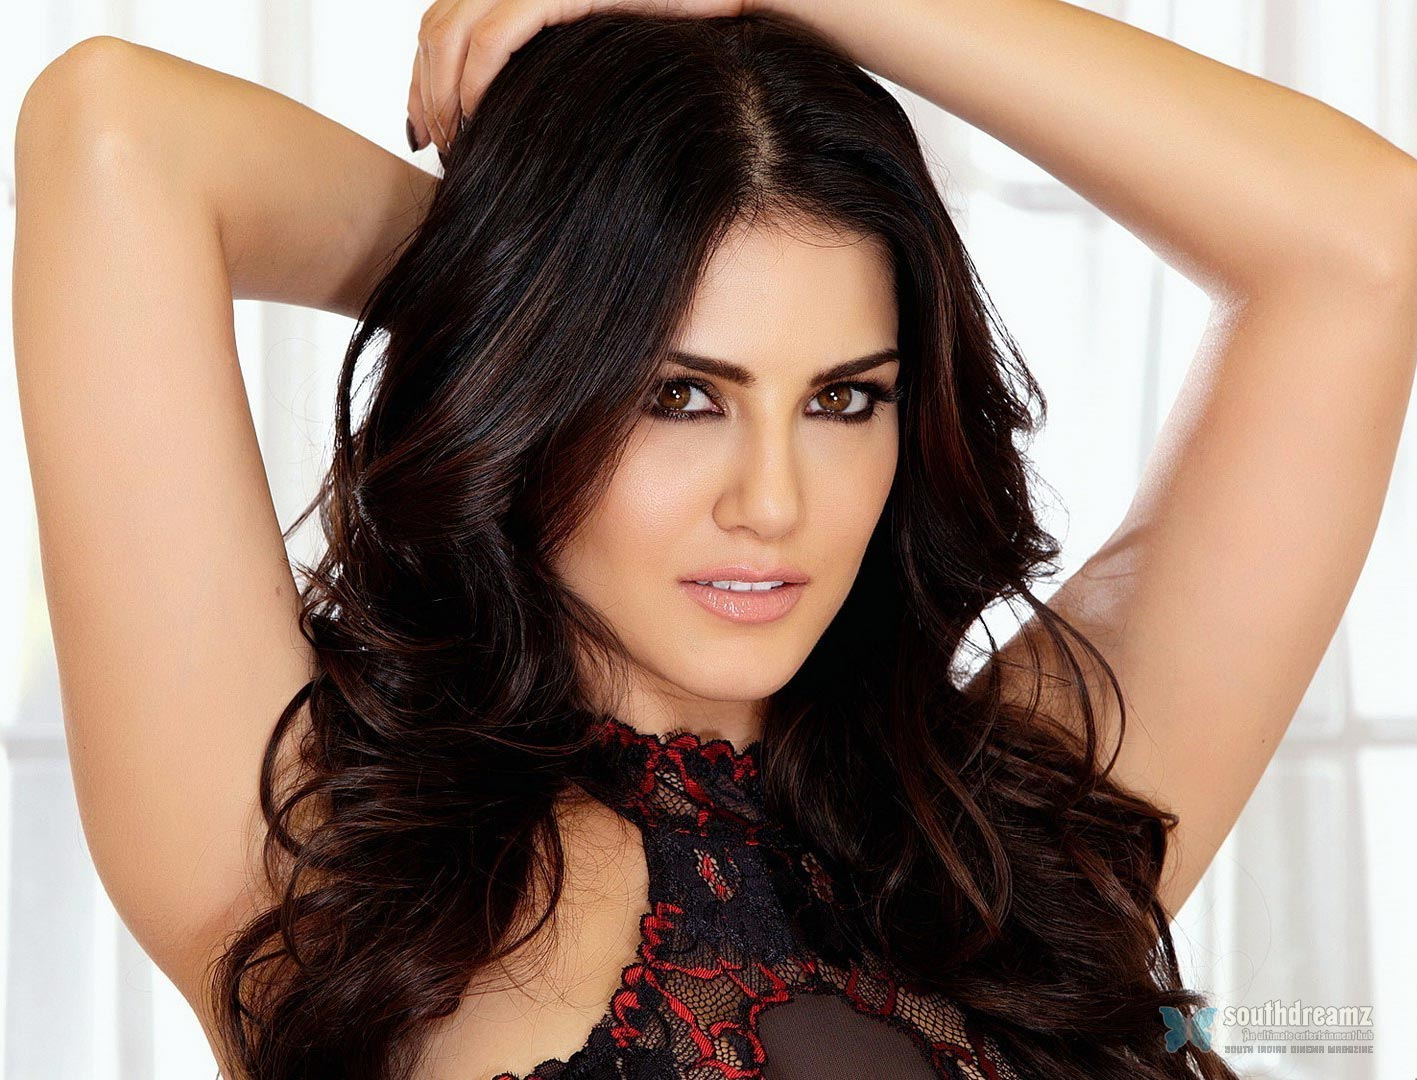 sunny leone hd wallpapers 2014 4 south indian cinema